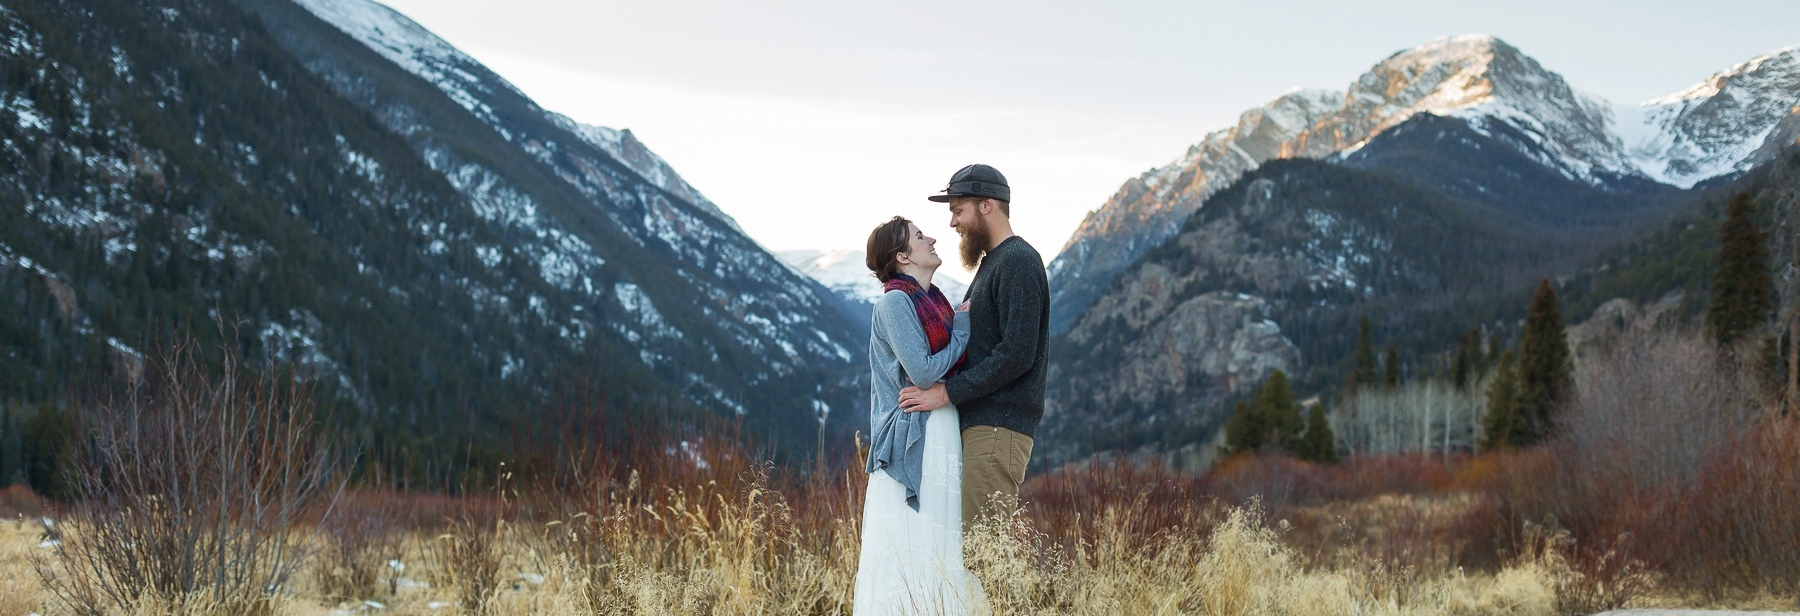 5 Tips For Planning Your Destination Wedding Bergreen Photography